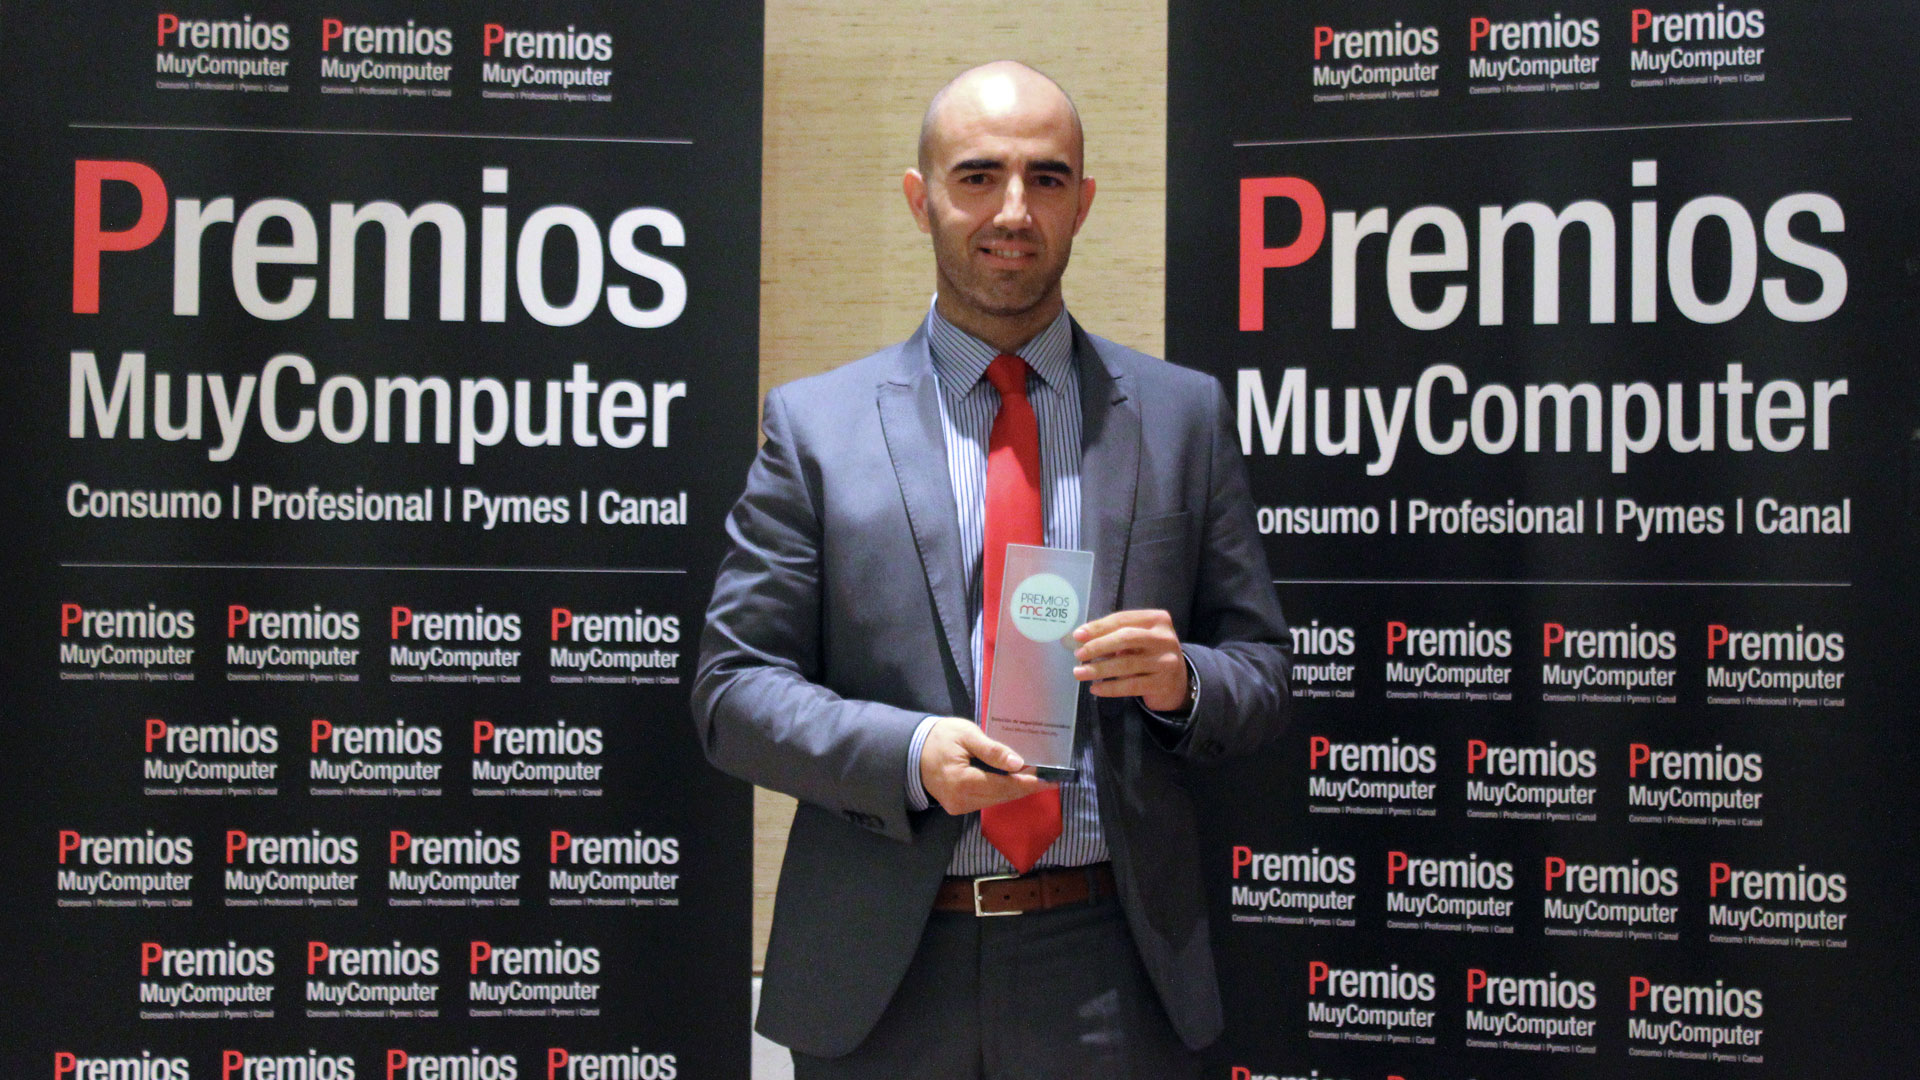 premios-mc2015-trend-micro-deep-security-solucion-seguridad-corporativa